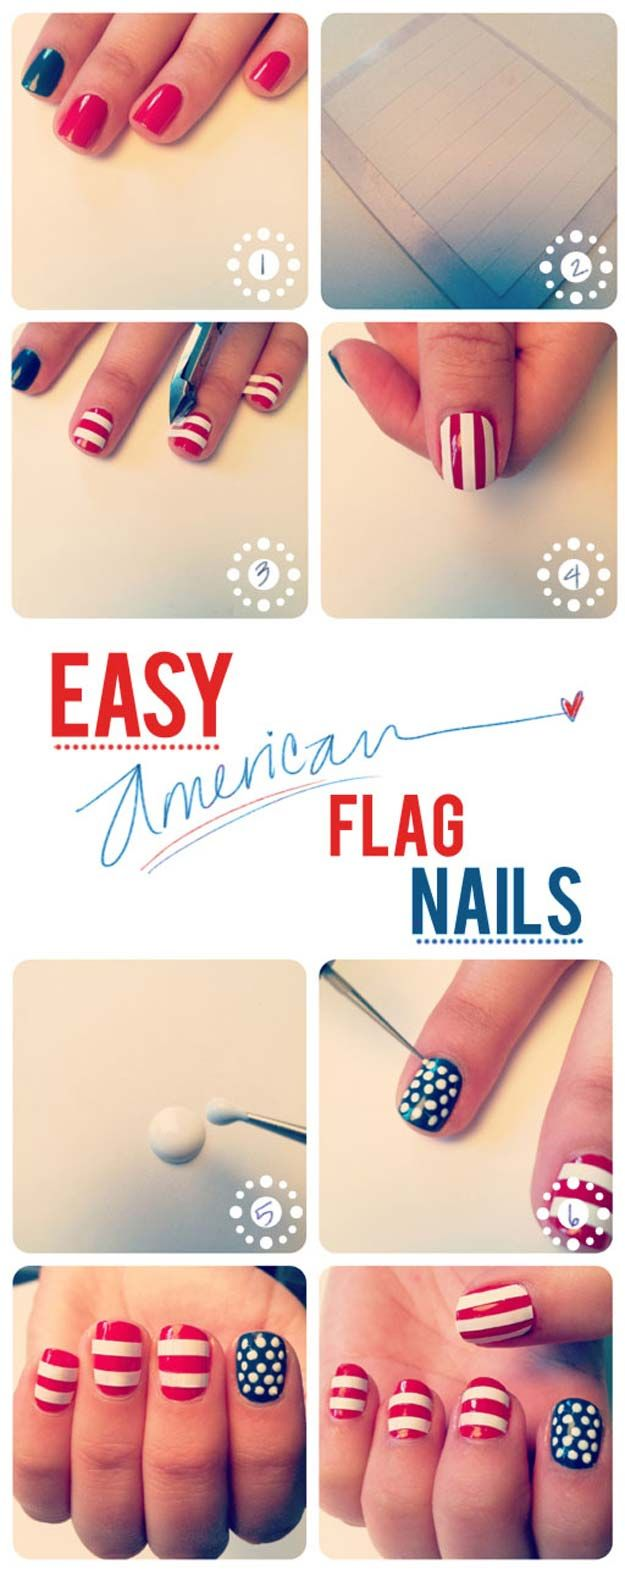 Nail art designs step by step at home with toothpick flags - Kompan ...